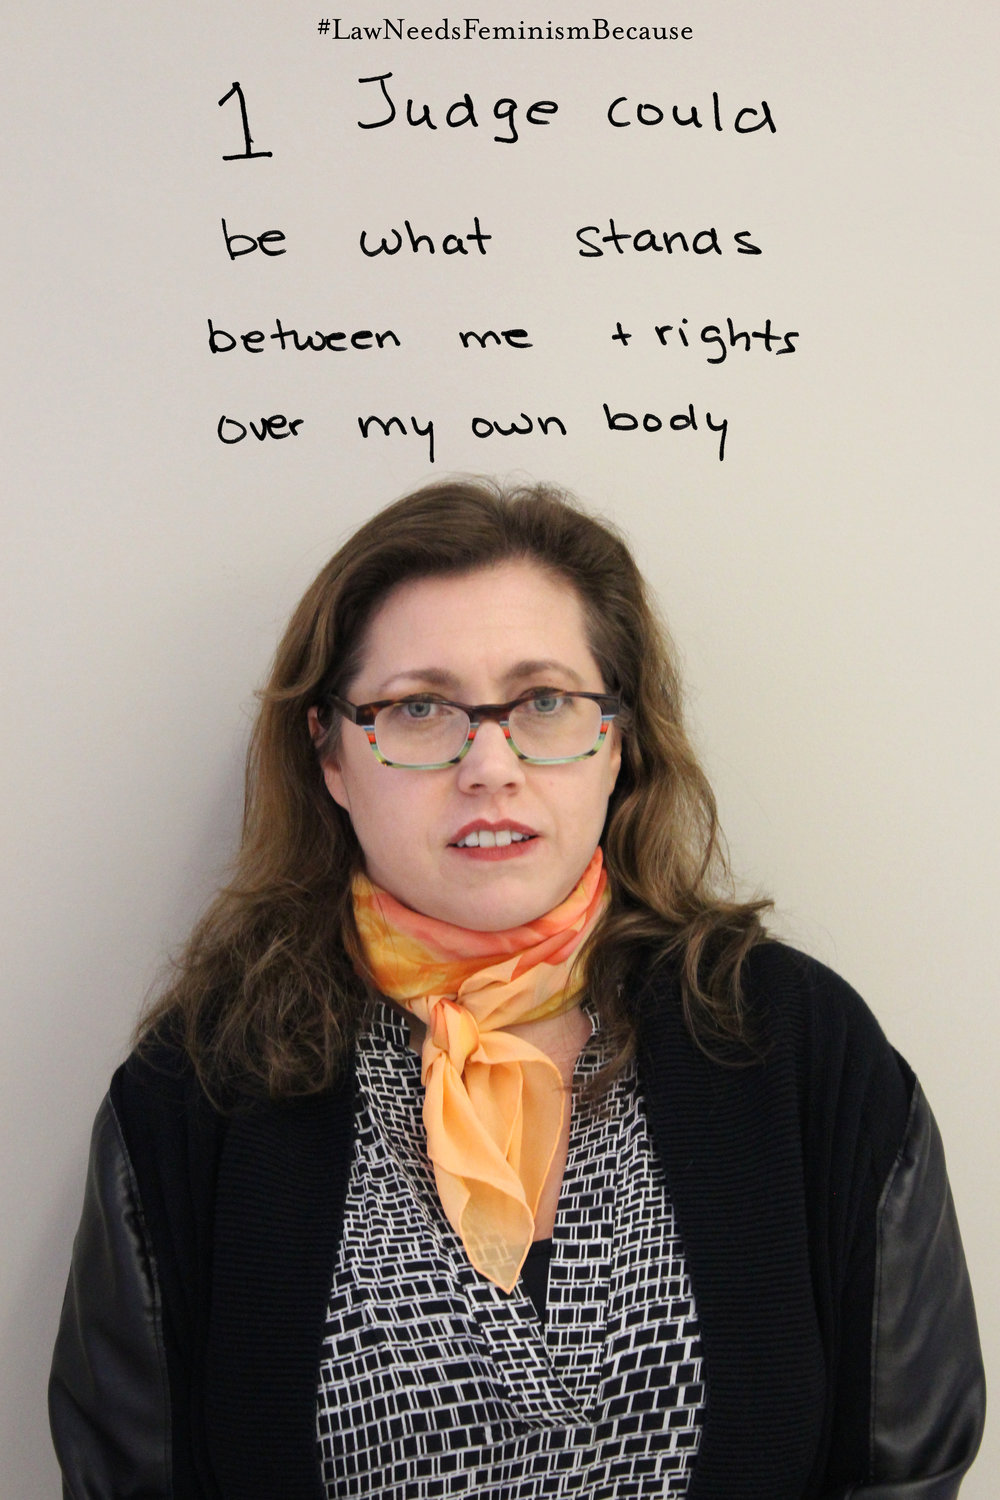 "Law Needs Feminism Because  ""1 judge could be what stands between me and rights over my own body."""